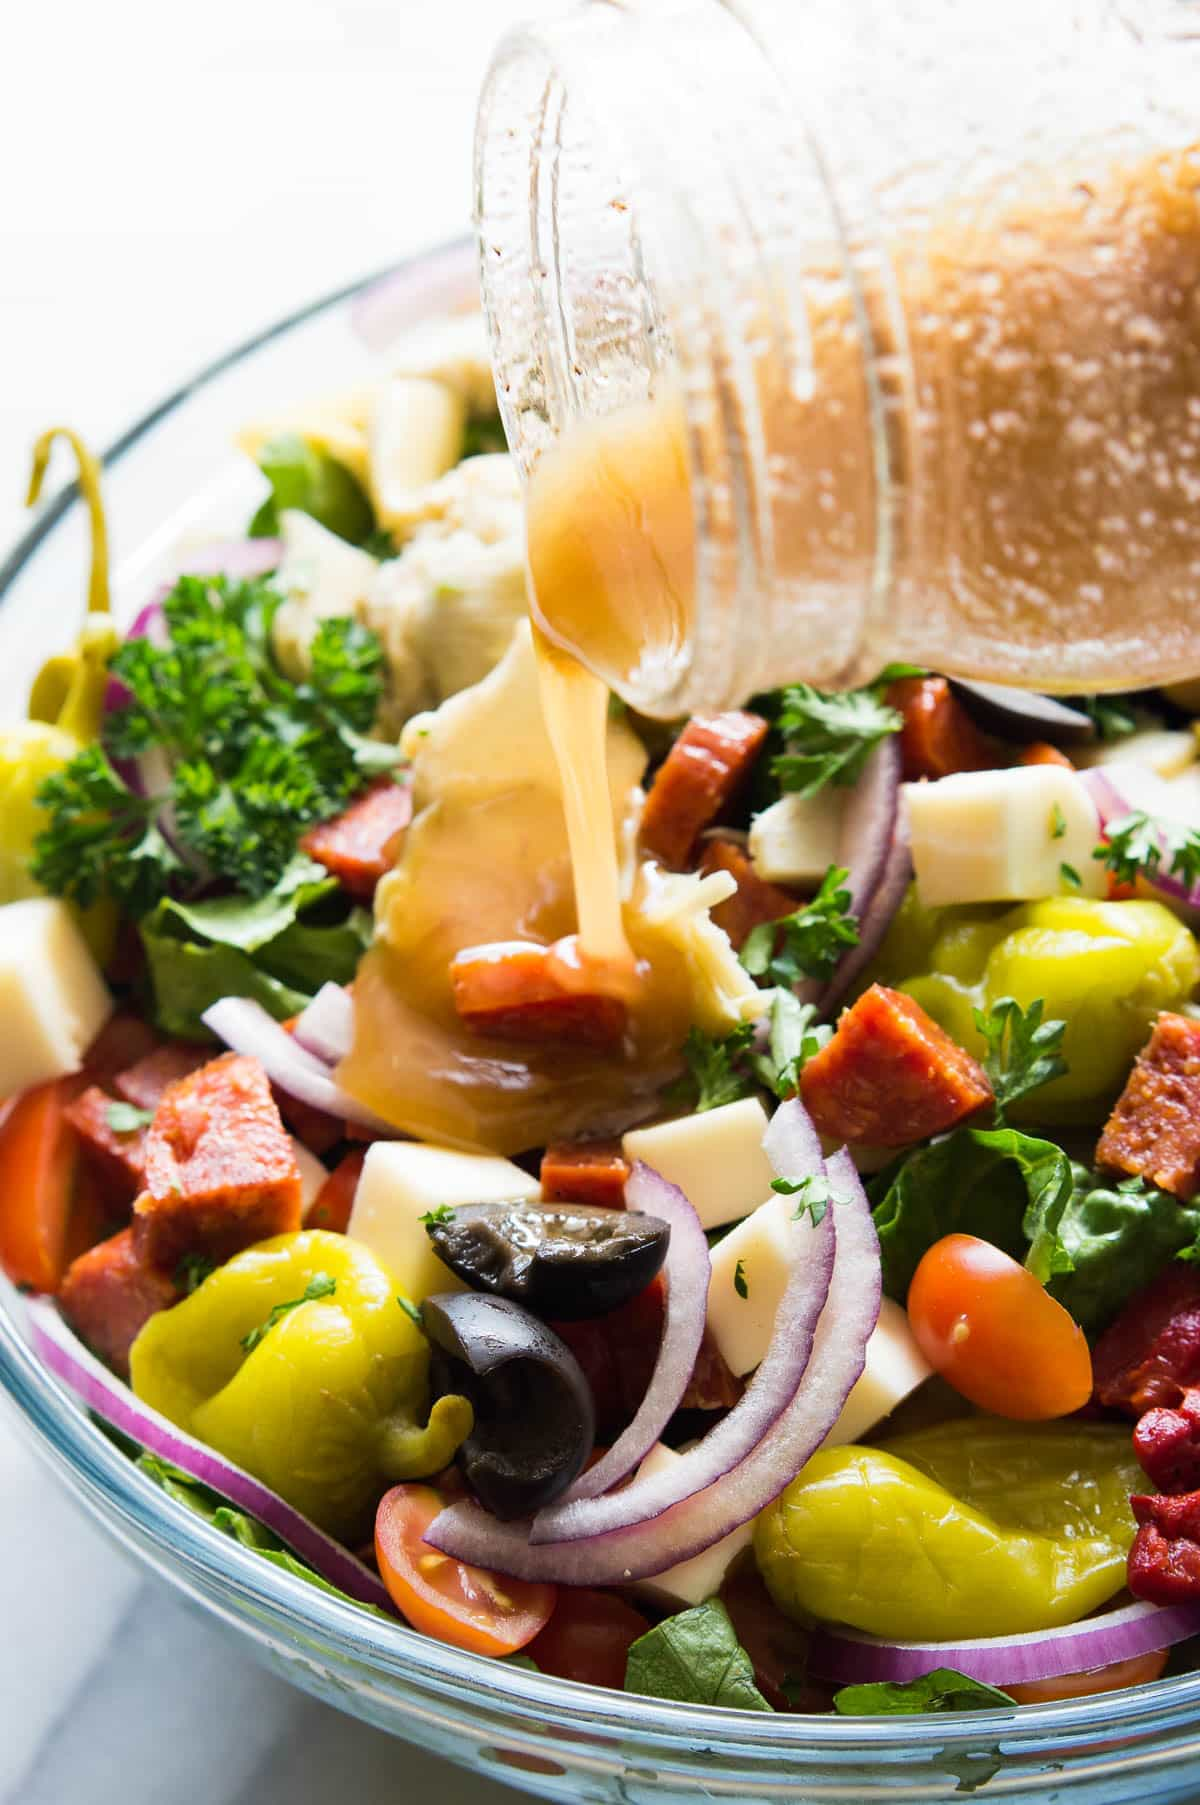 Antipasto Salad! The perfect side dish to go along with your Italian meals, loaded with artichoke hearts, roasted red peppers, olives, pepperoni, and fresh mozzarella! Not to mention drizzled with an easy to make vinaigrette made with pantry items!